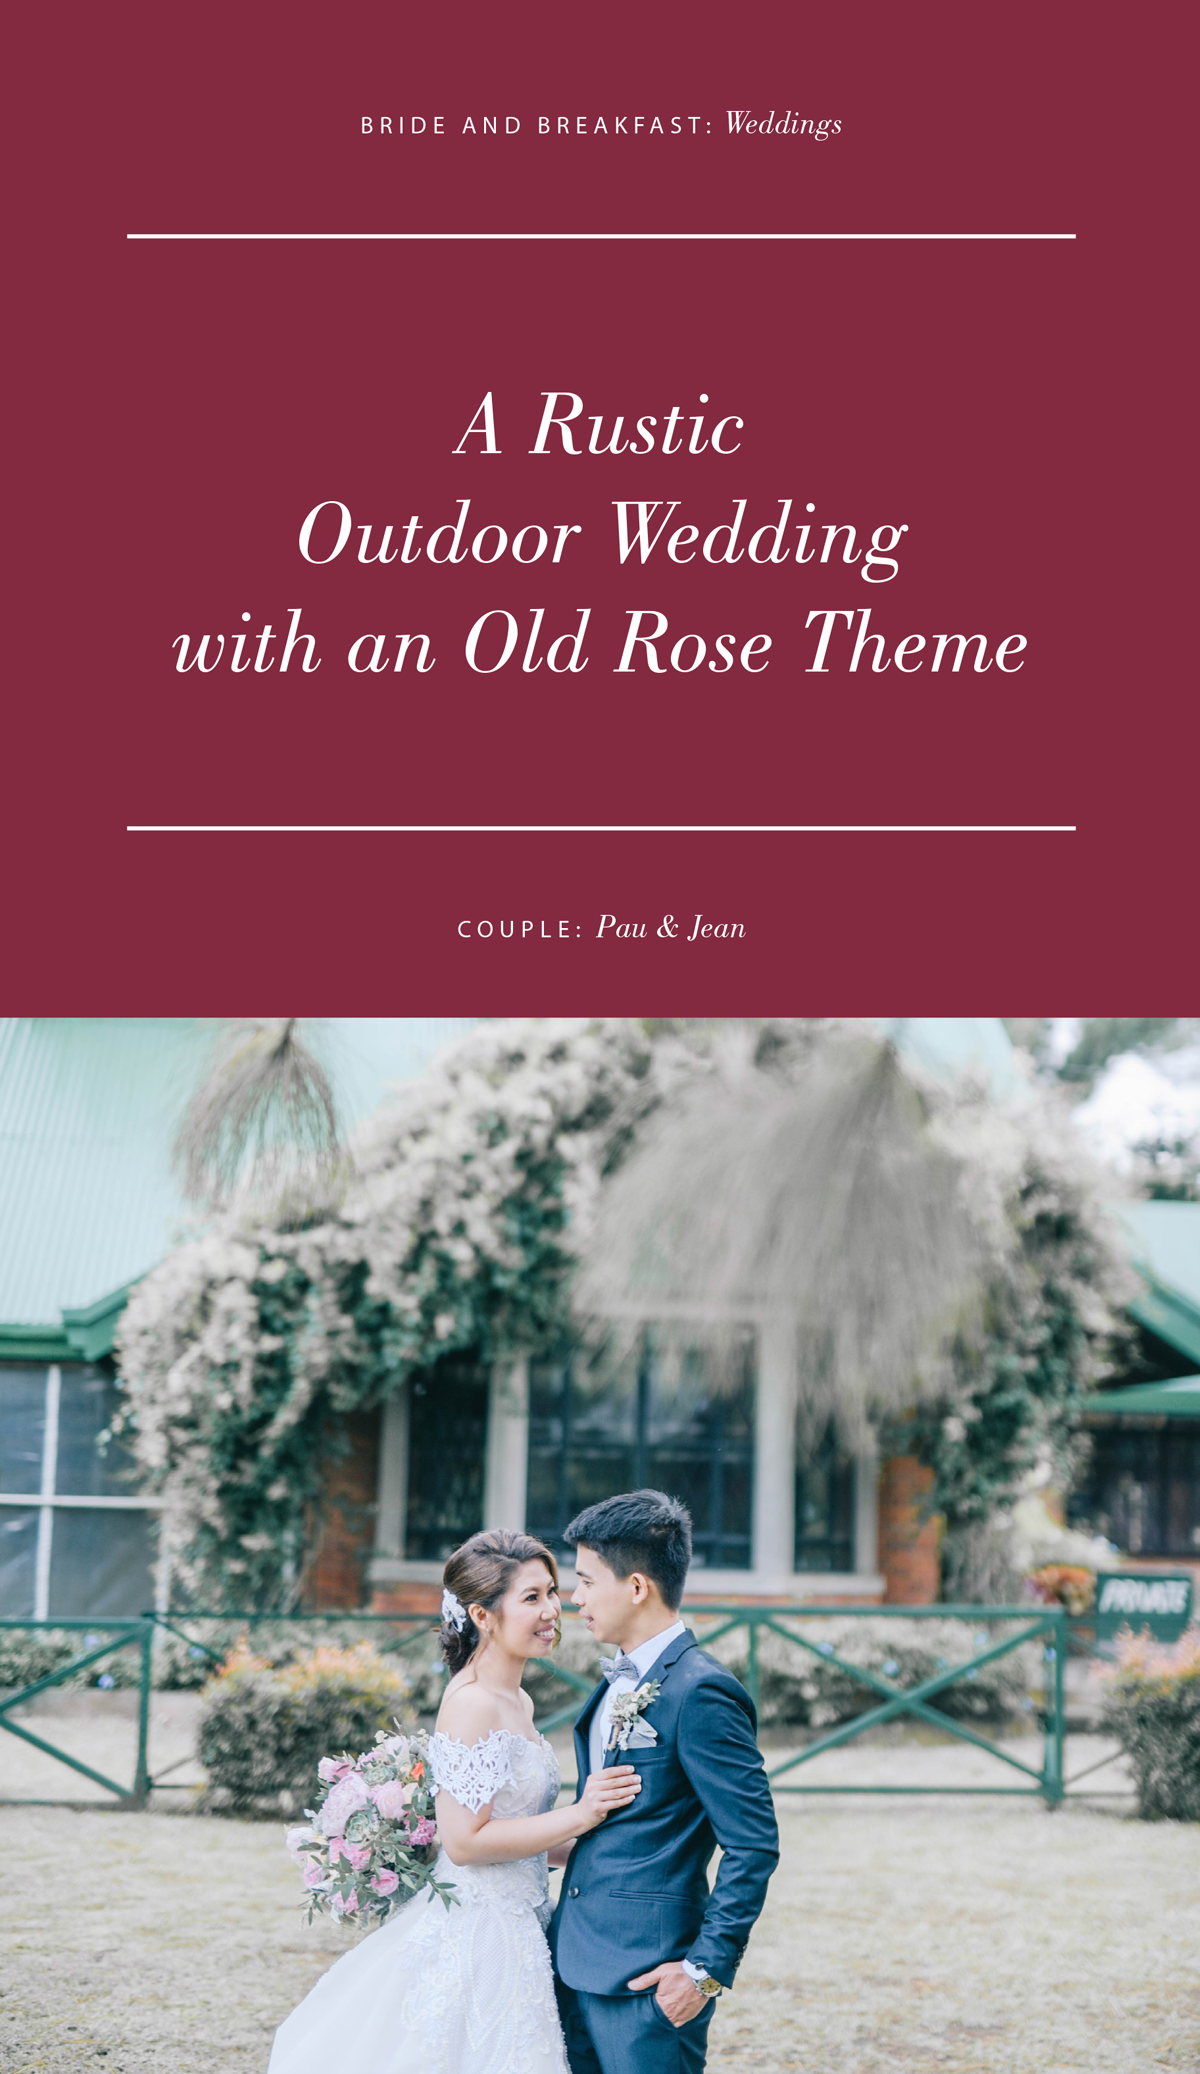 A Rustic Outdoor Wedding with an Old Rose Theme | Real Weddings ...